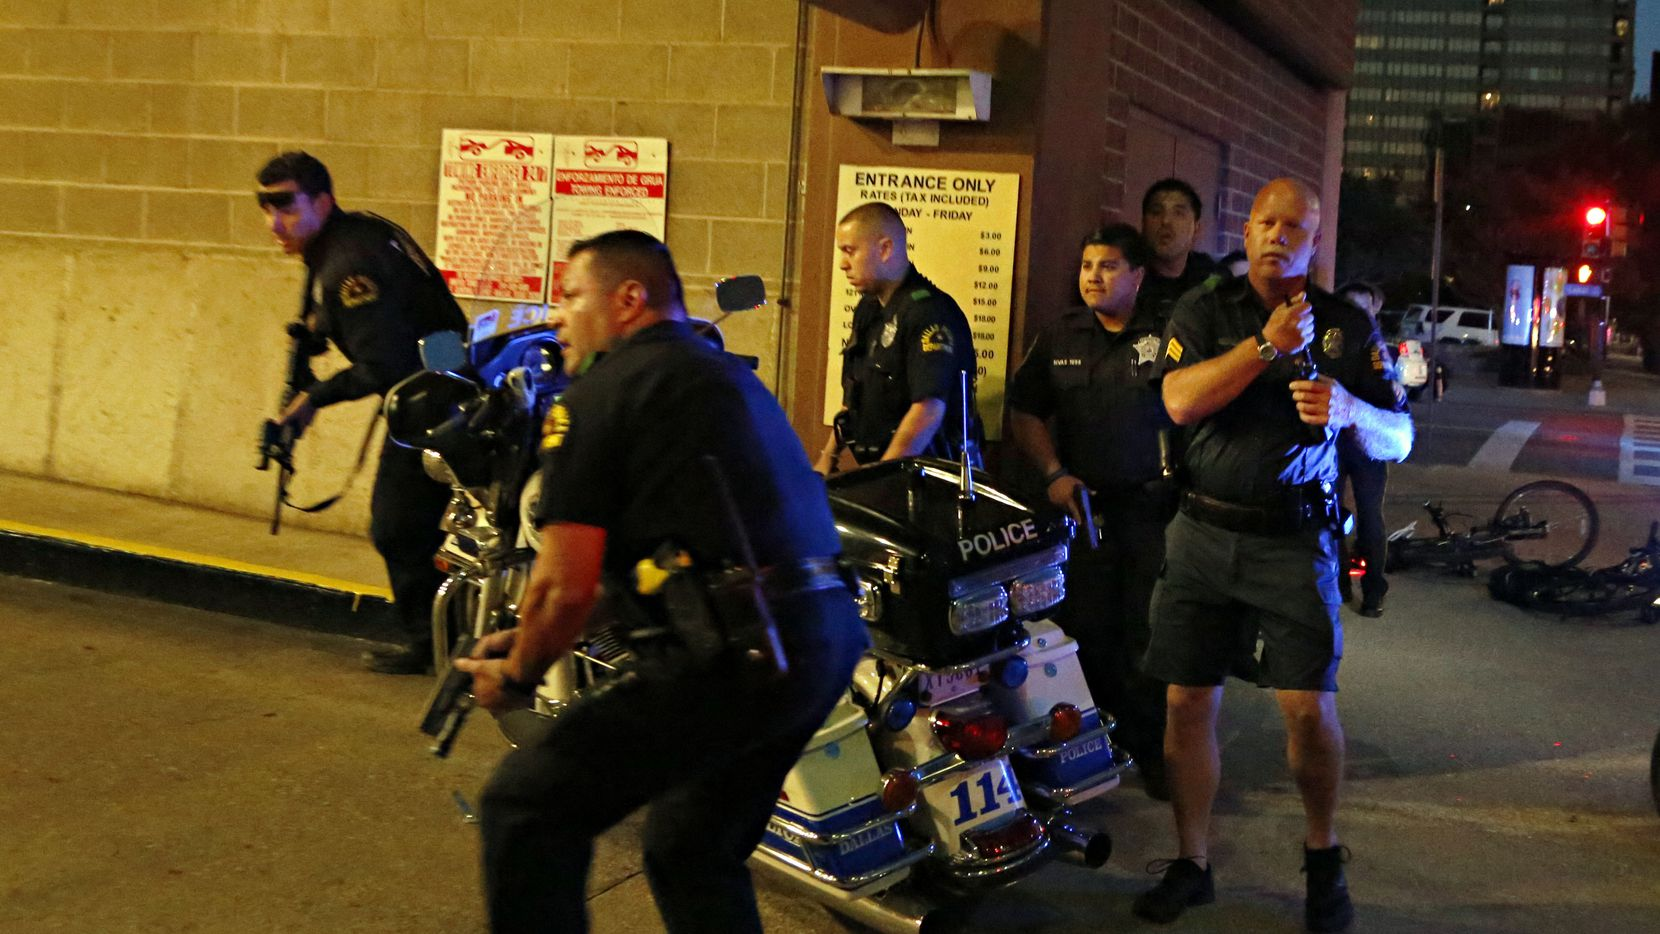 Police officers run with guns drawn into a parking garage during the deadly shooting. (G.J. McCarthy/Staff Photographer)